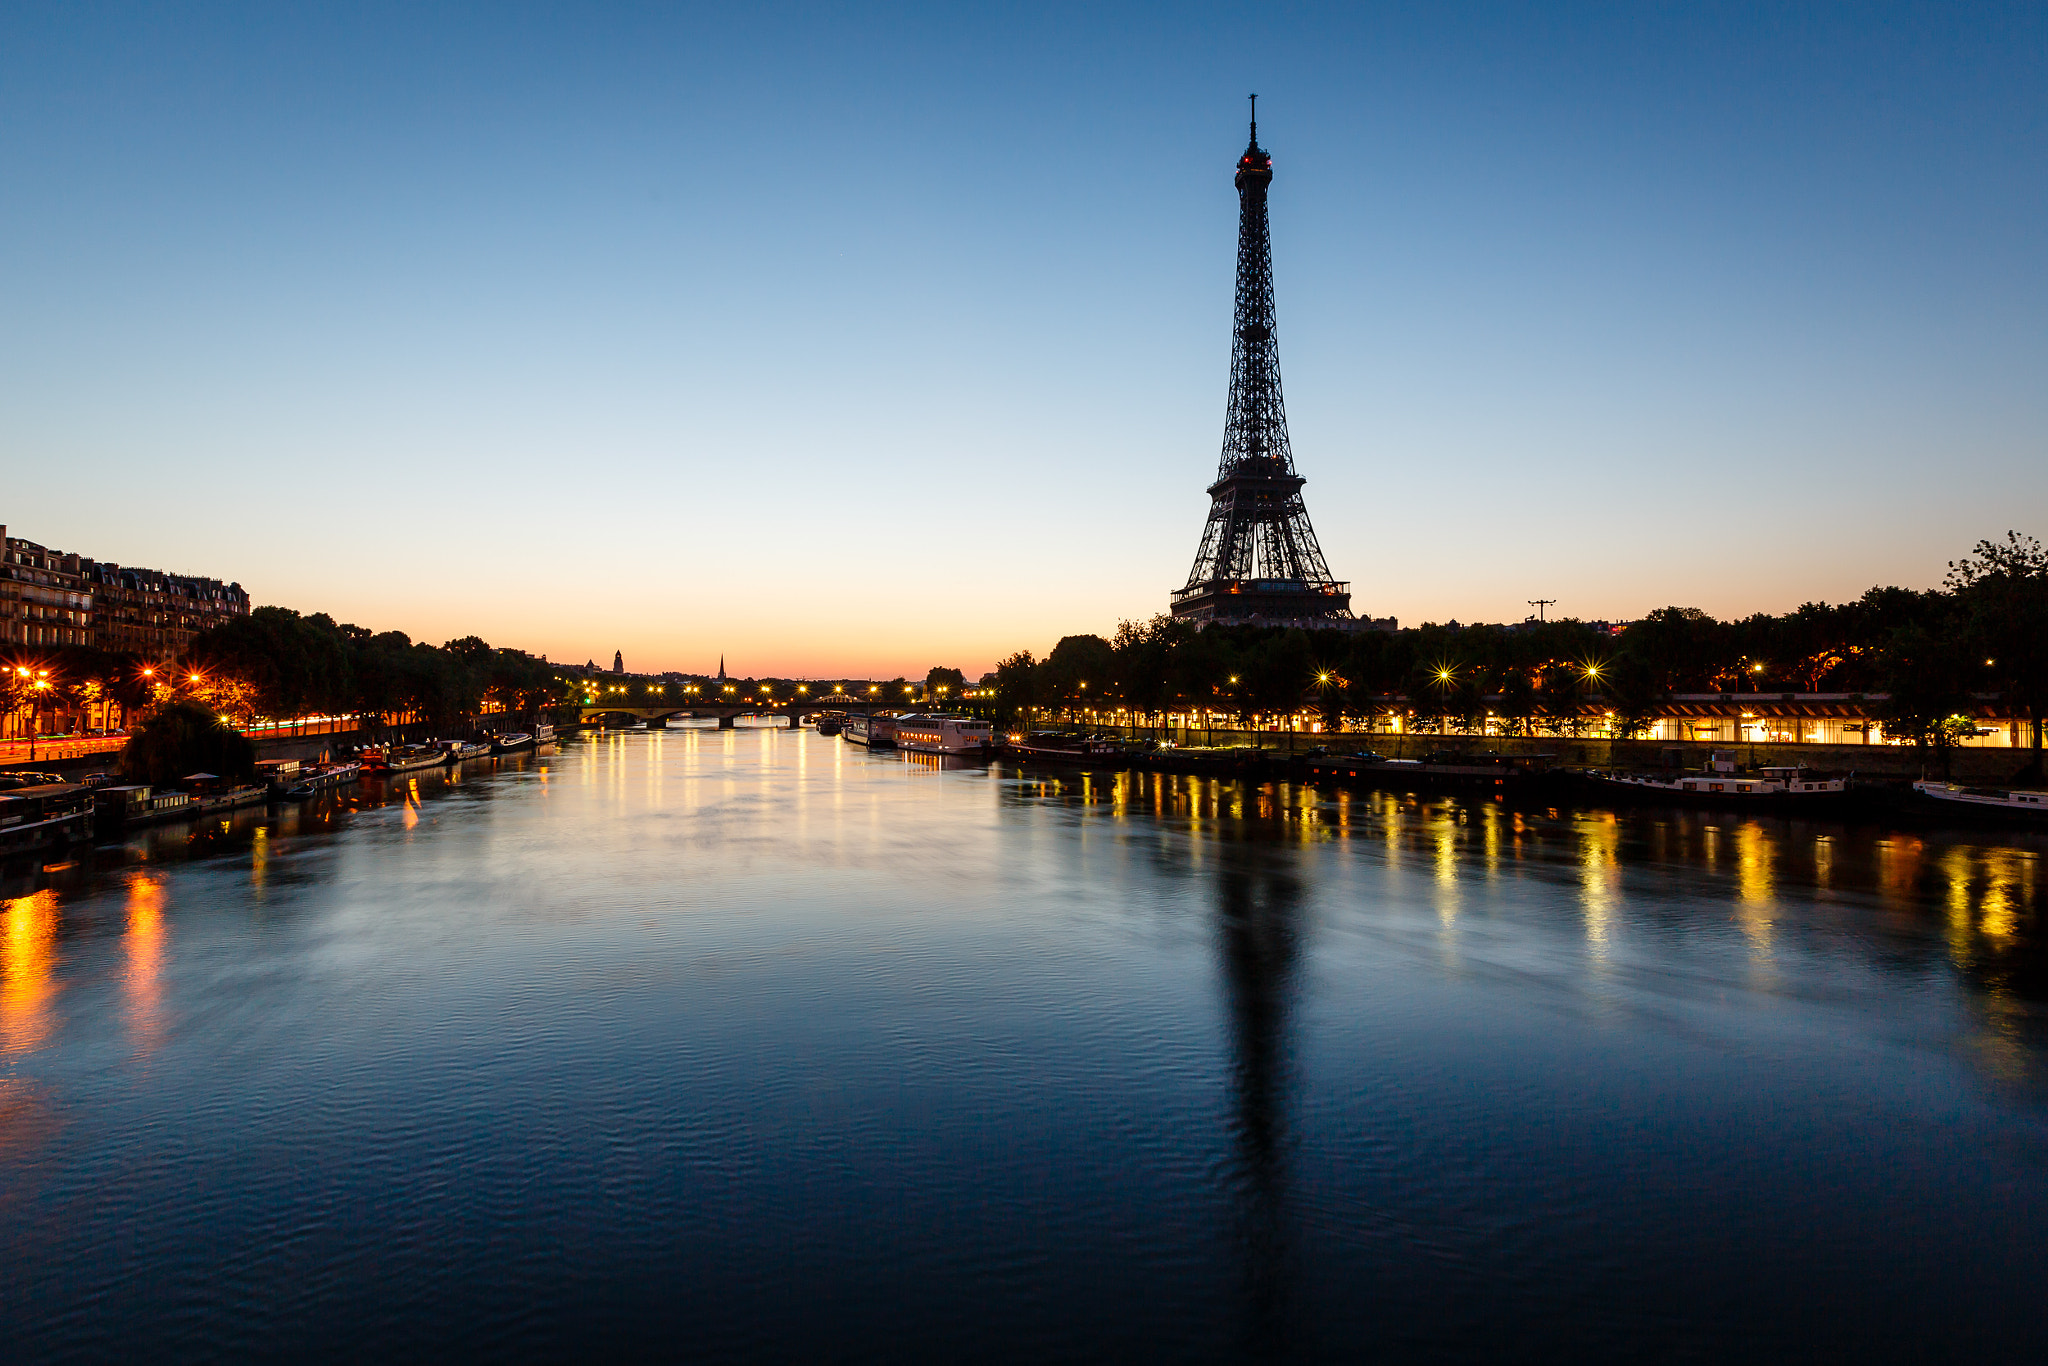 Photograph Eiffel Tower by Andrey Omelyanchuk on 500px